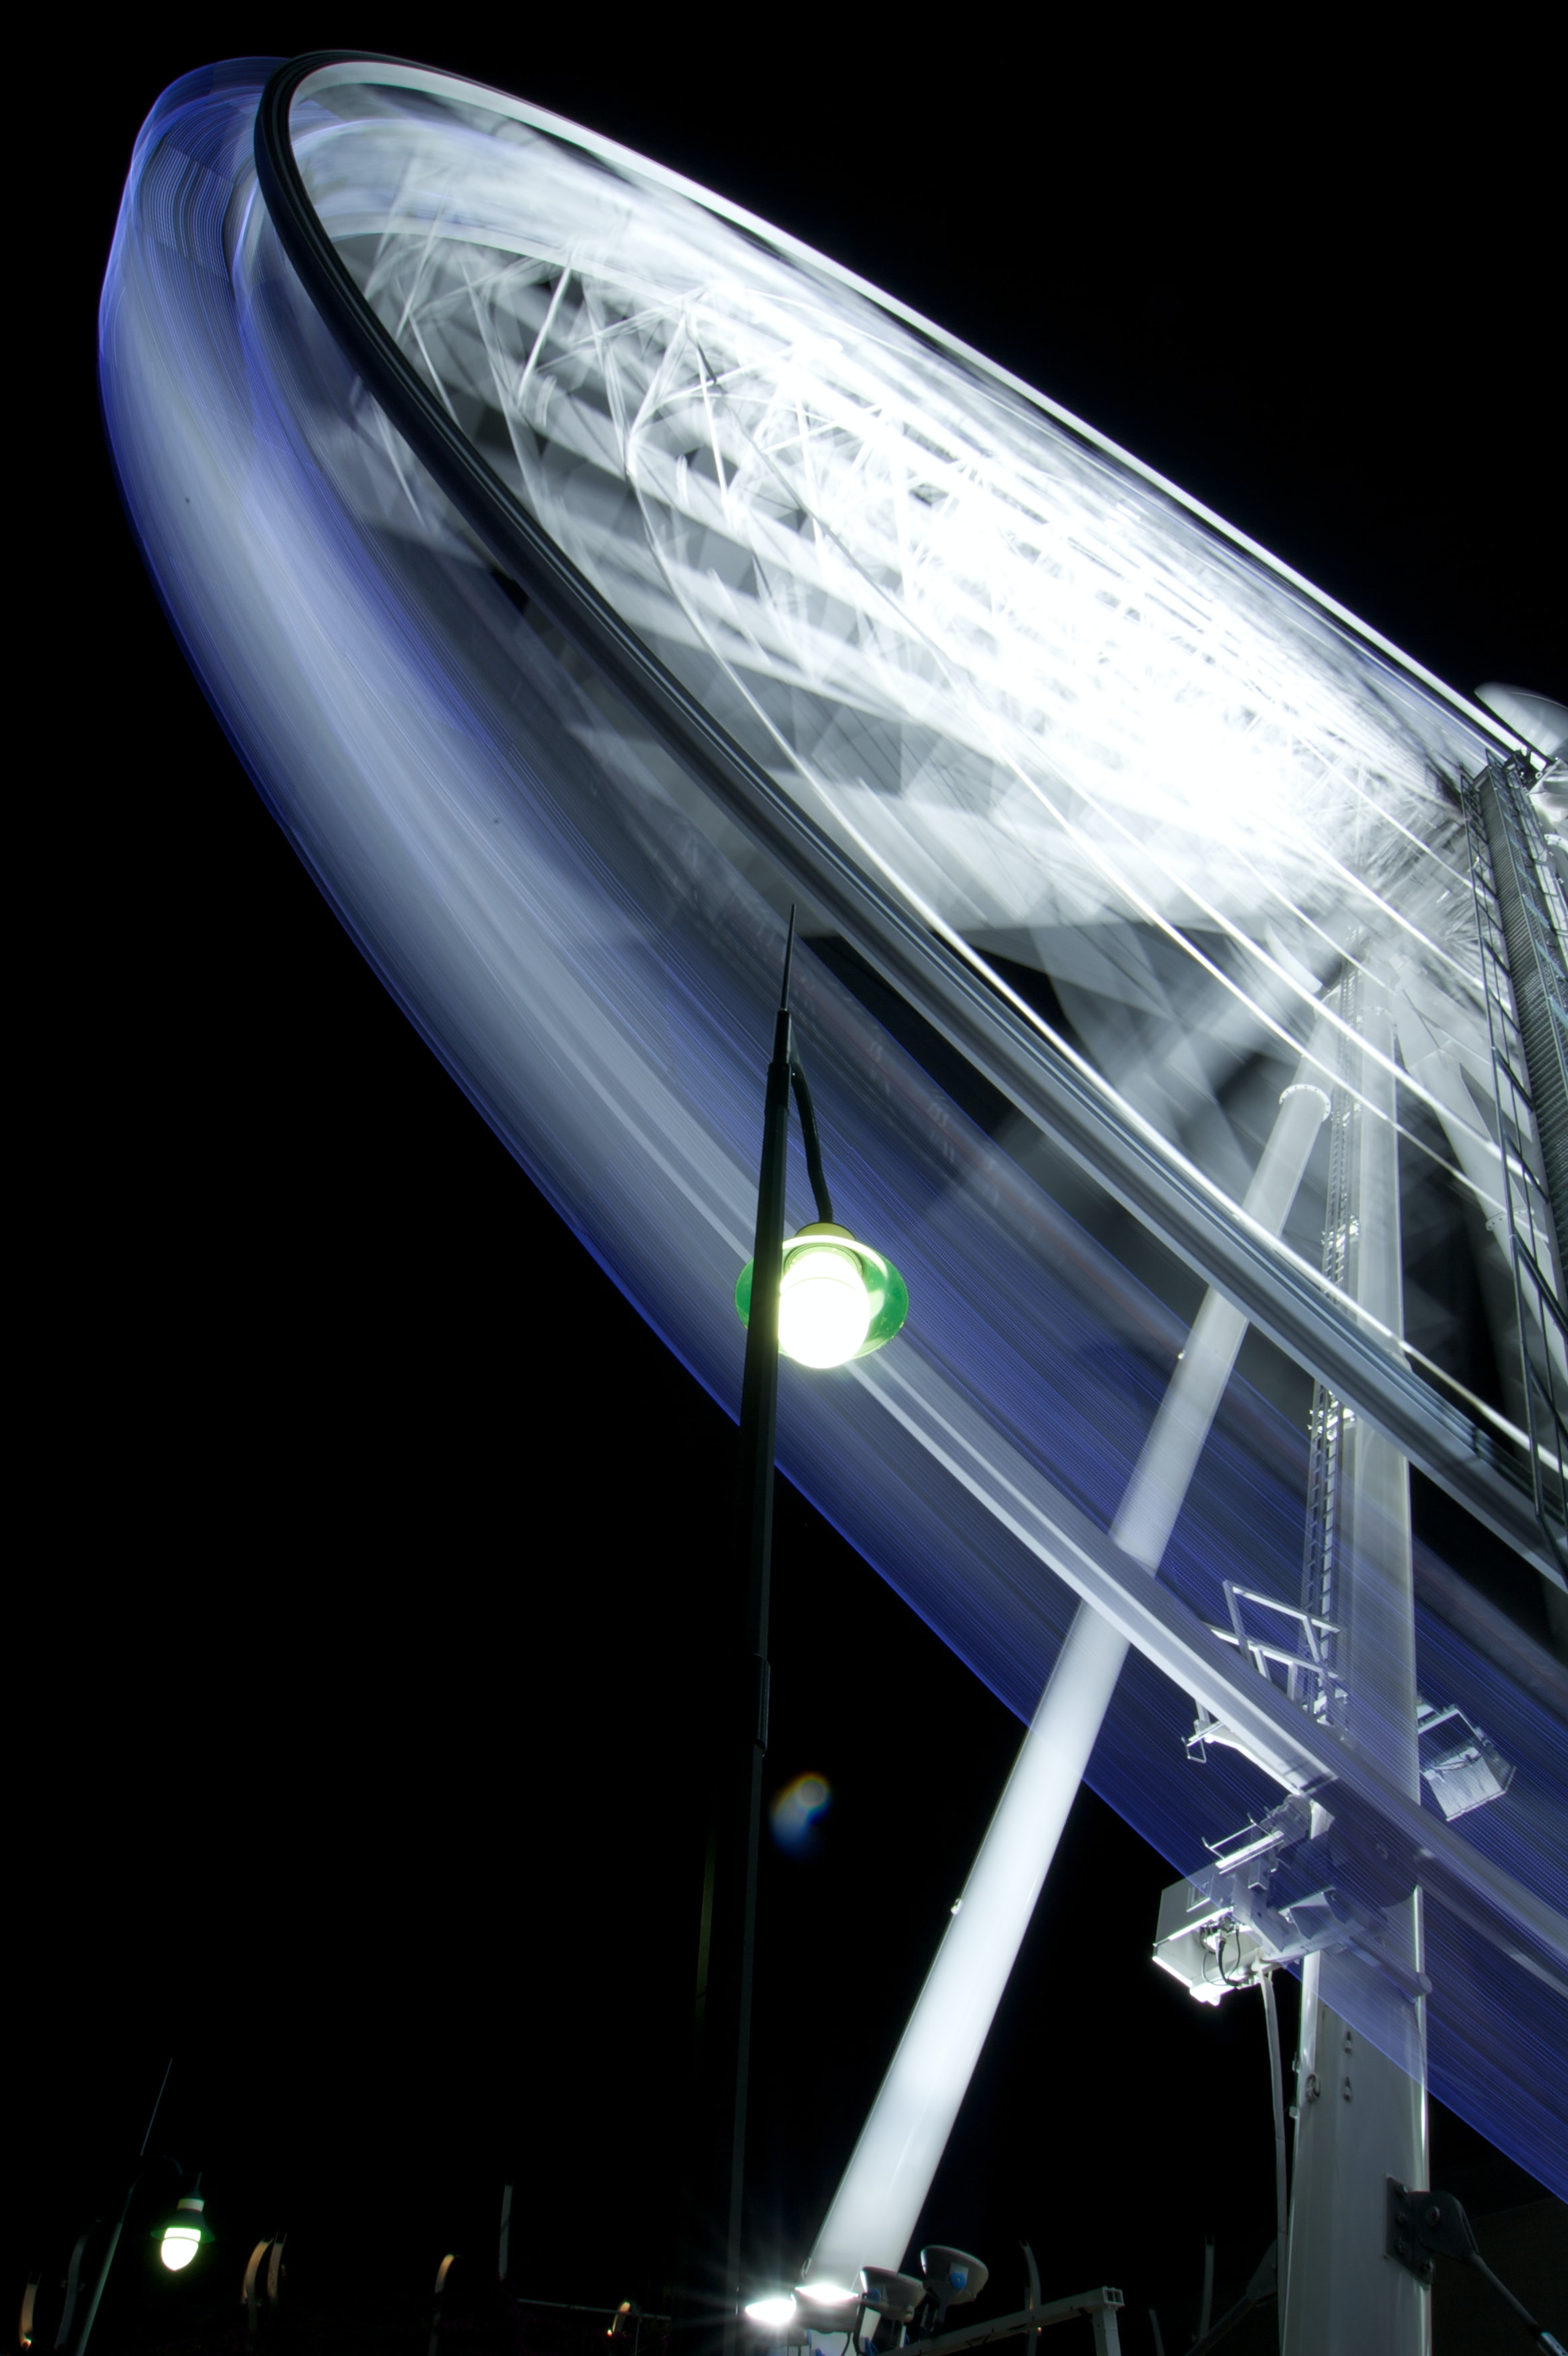 timelapse photo of ferris wheel at night